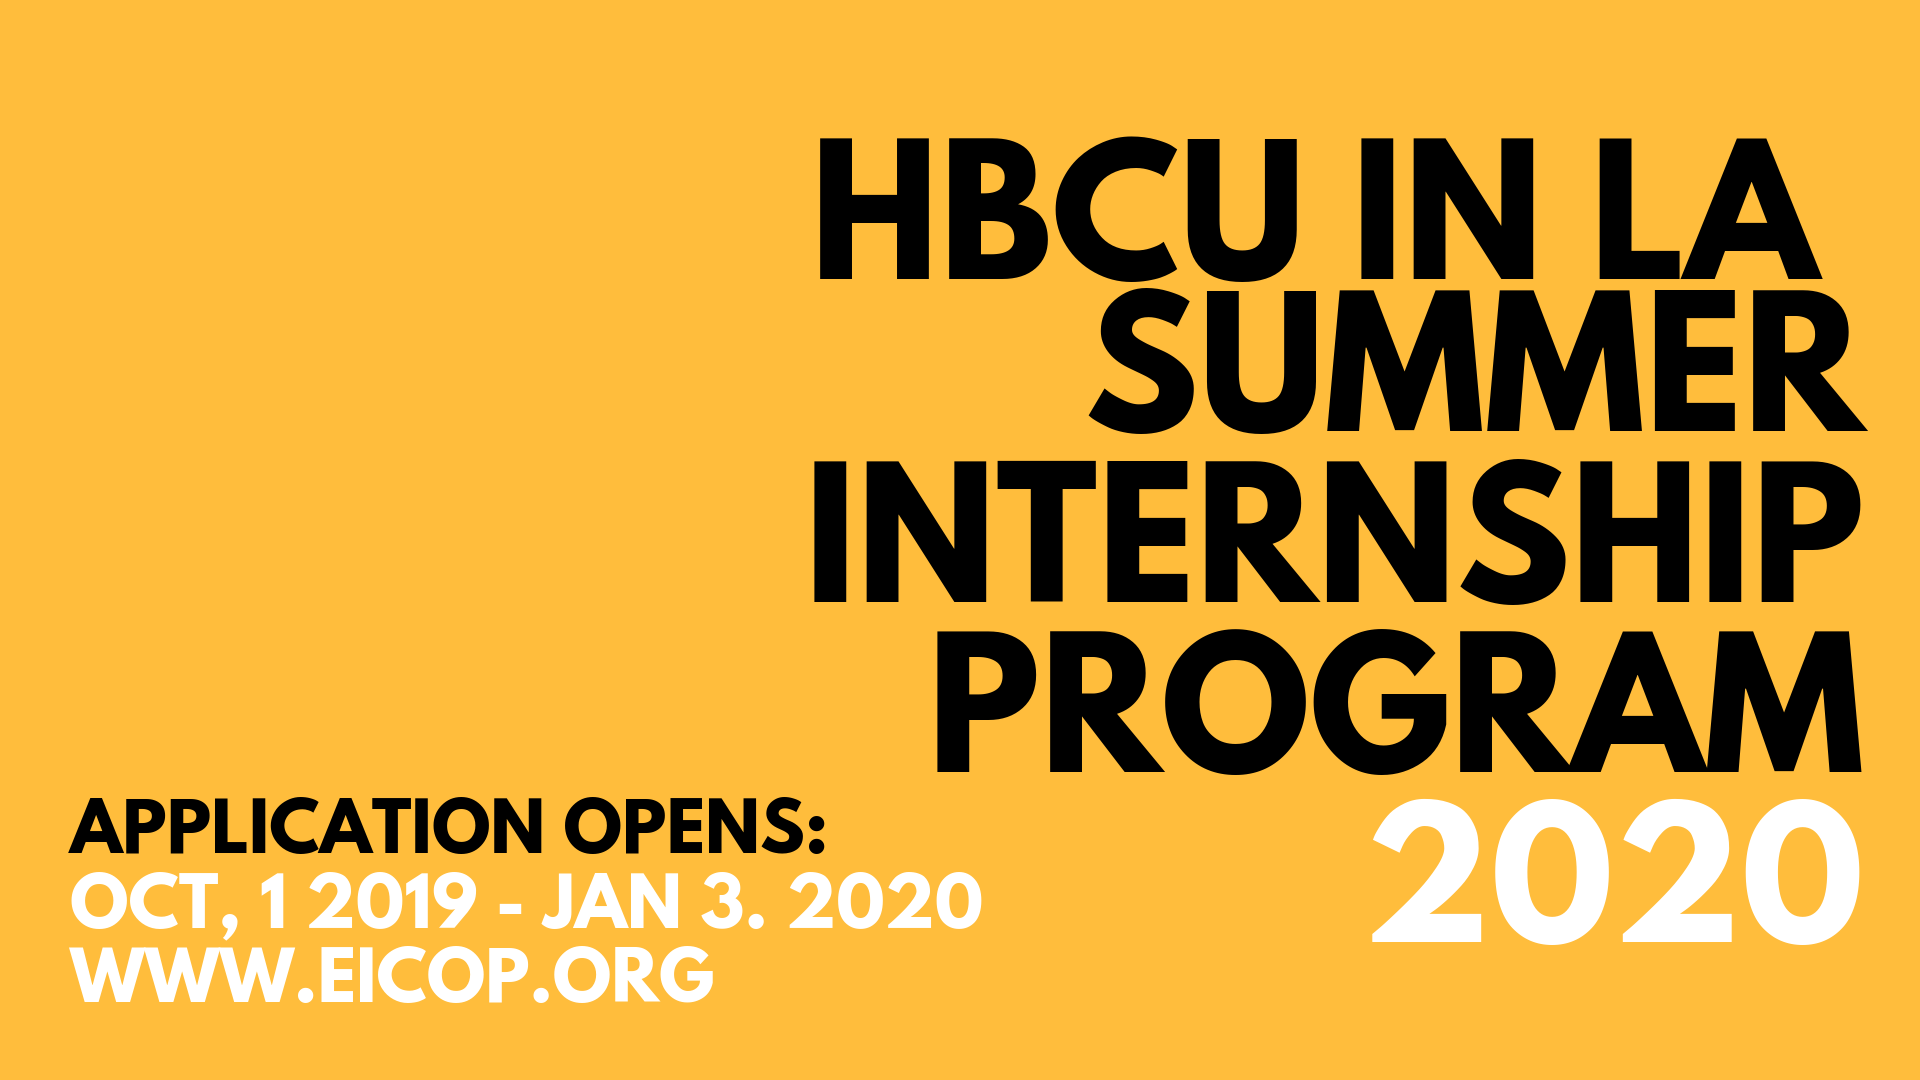 HBCU in LA Internship Program EICOP 1920x1080